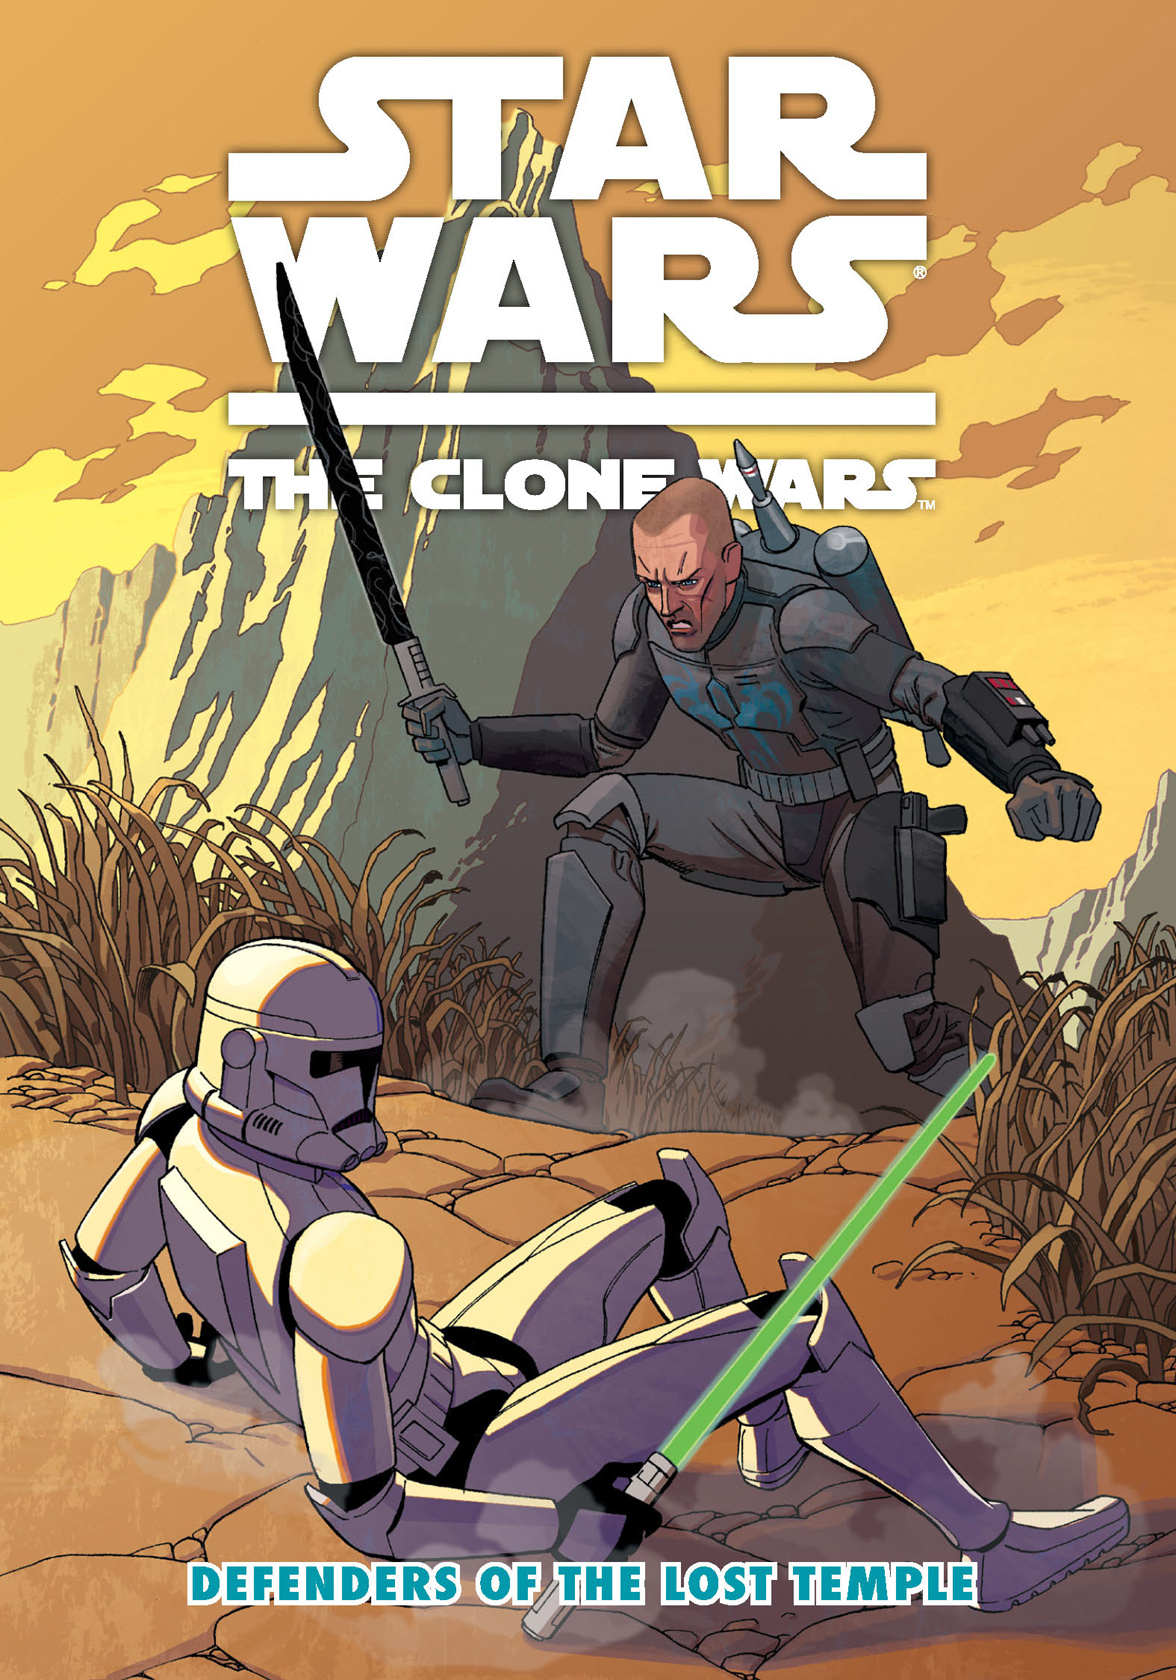 Star Wars: The Clone WarsDefenders of the Lost Temple By: Justin Aclin,Ben Bates,Mike Hawthorne